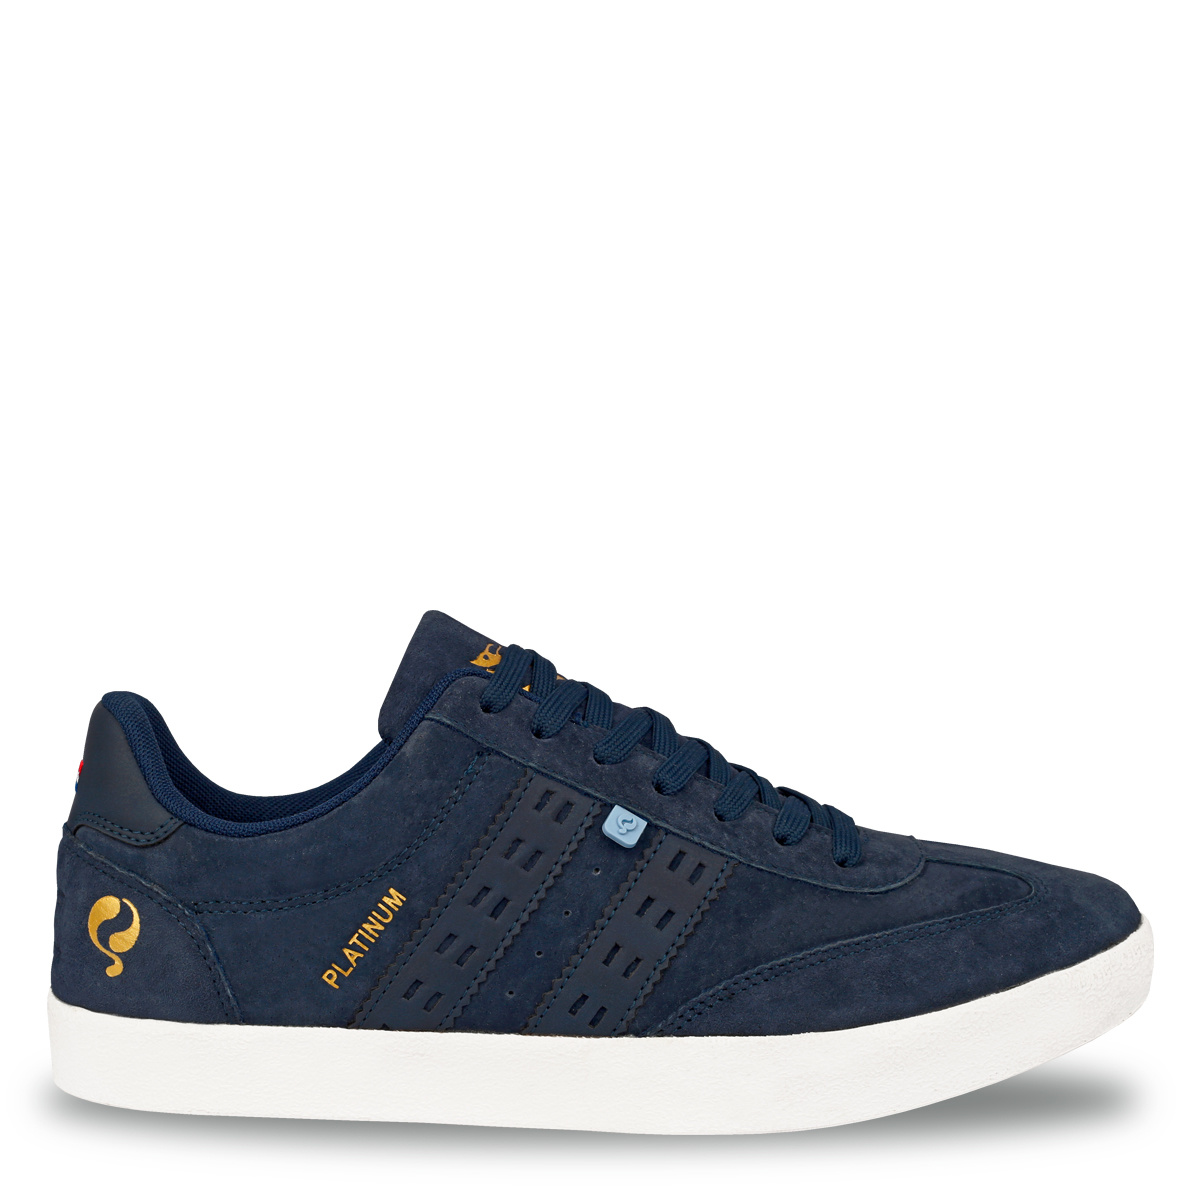 Heren Sneaker Platinum - Denim blauw